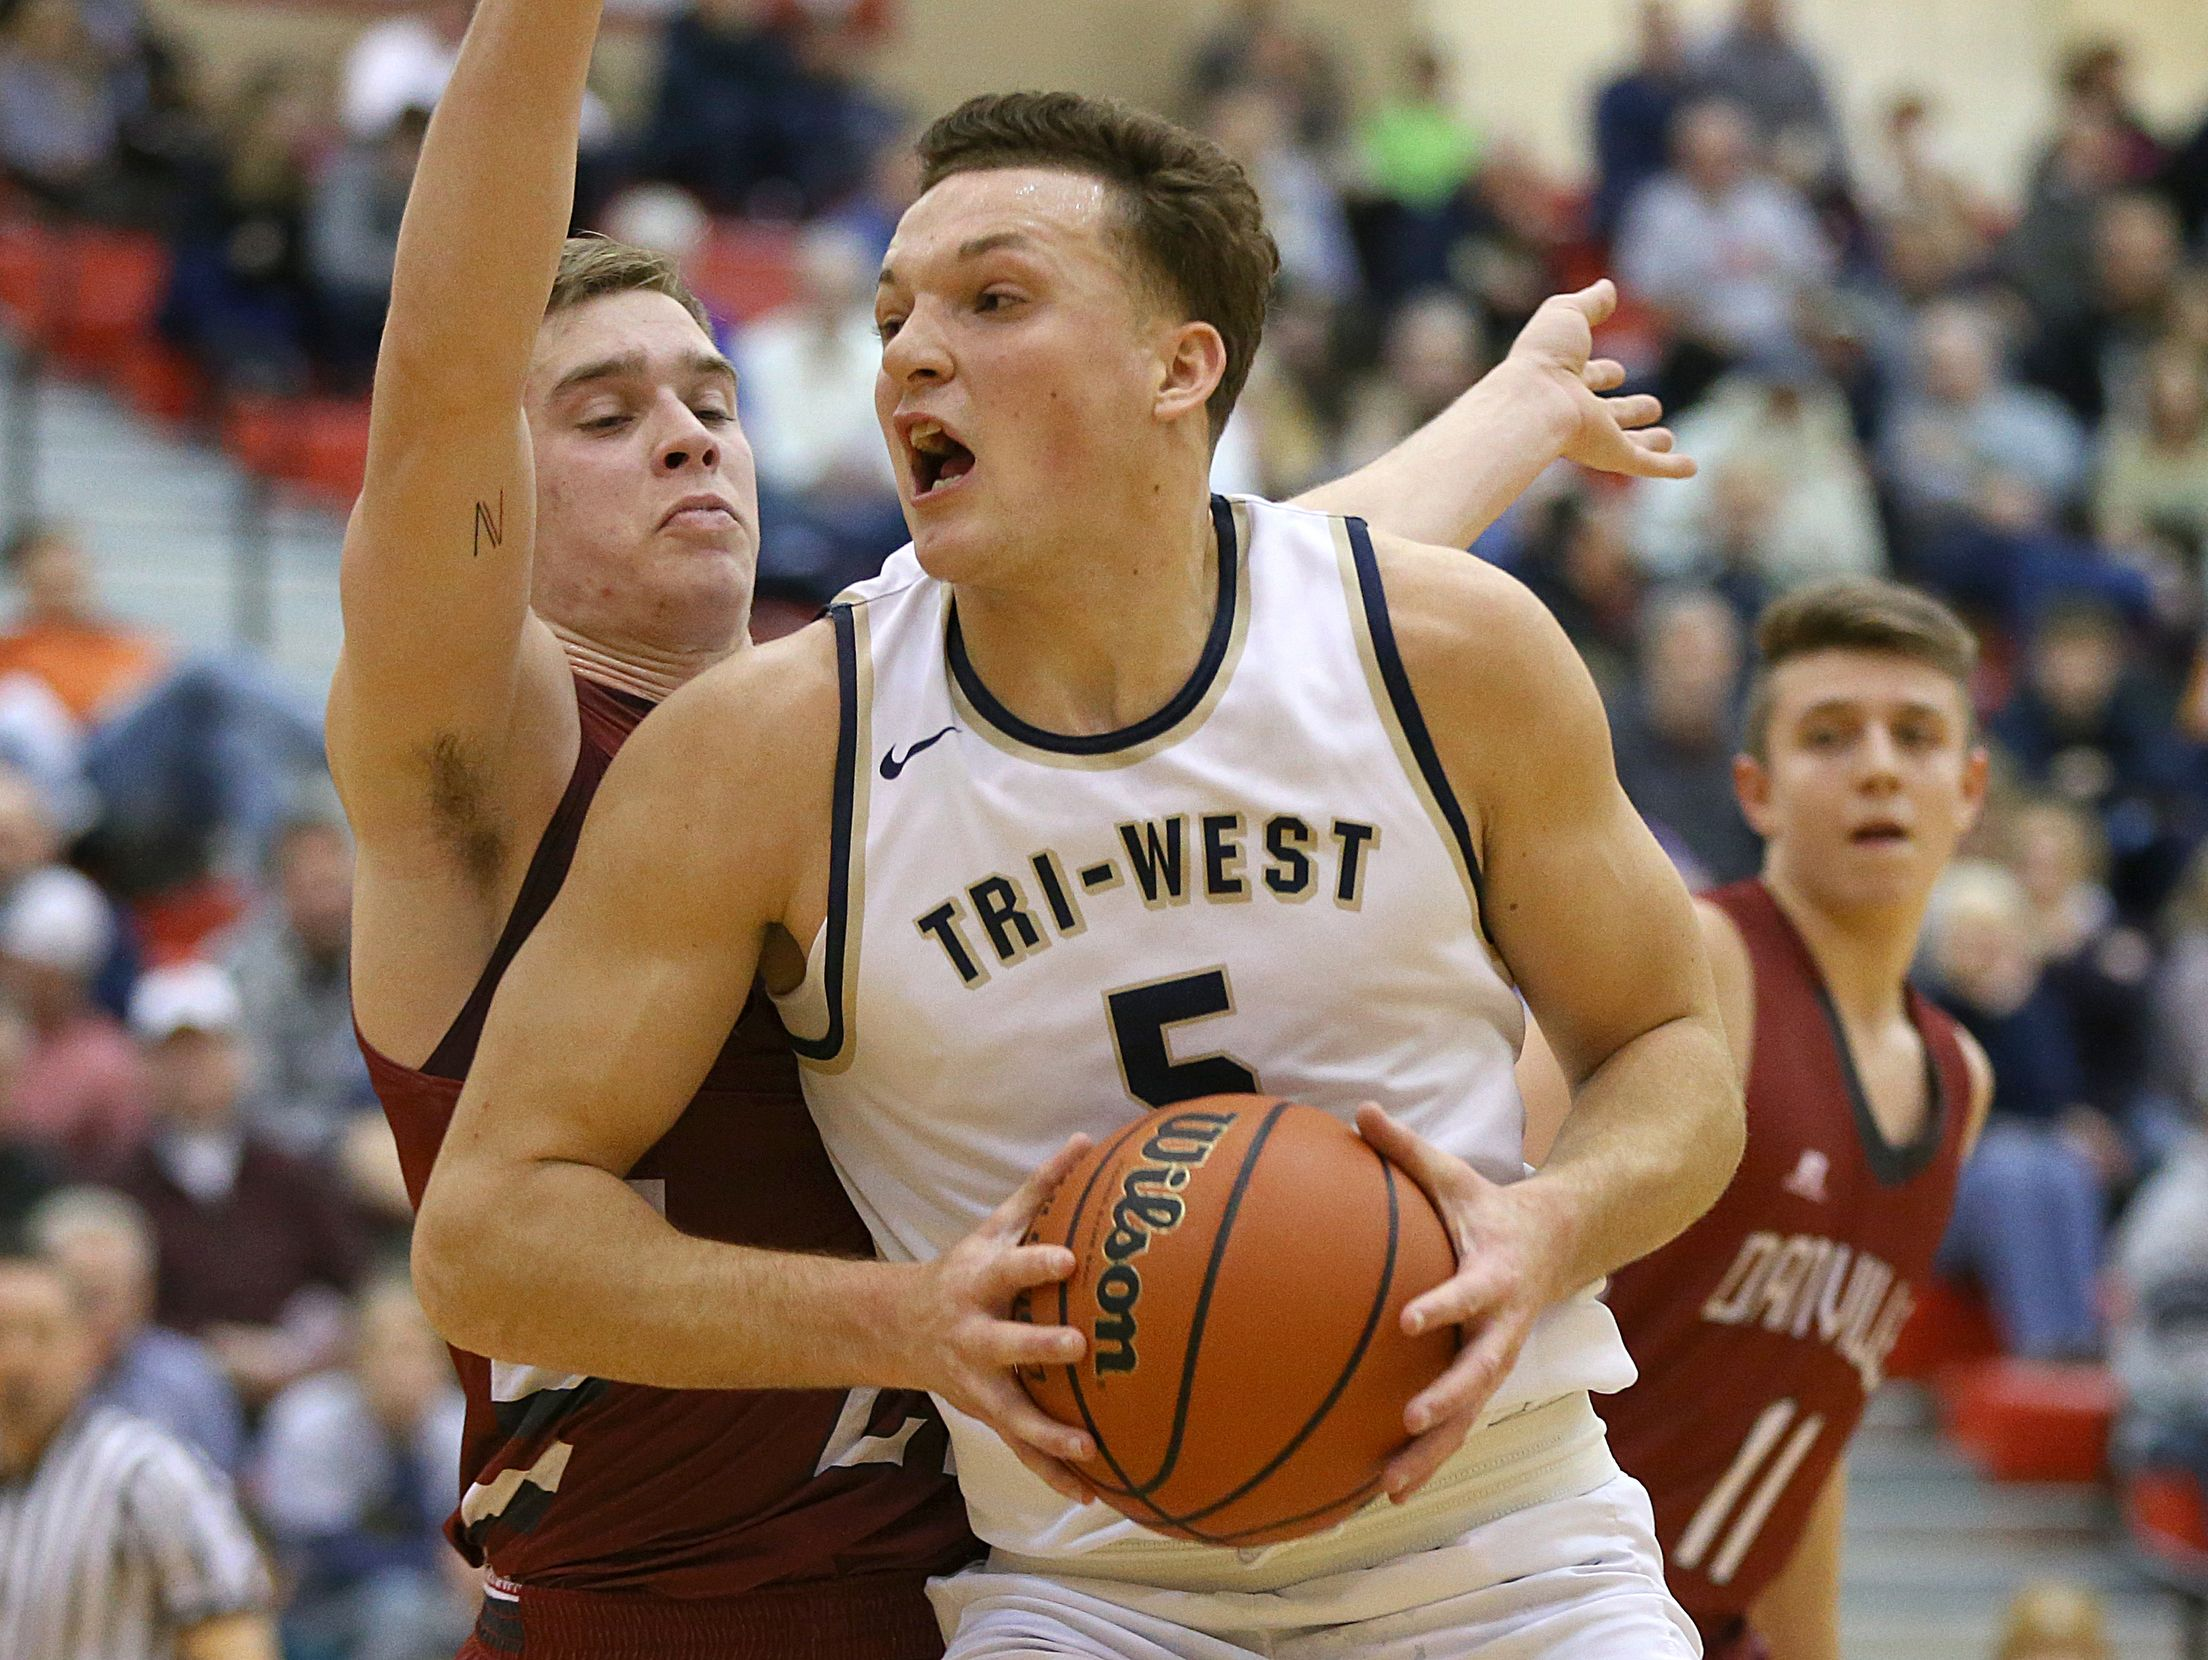 Tri-West Bruins forward Peyton Hendershot (5) boxed out a player Jan. 6 during the Hendricks County boys semifinals at Plainfield High School.